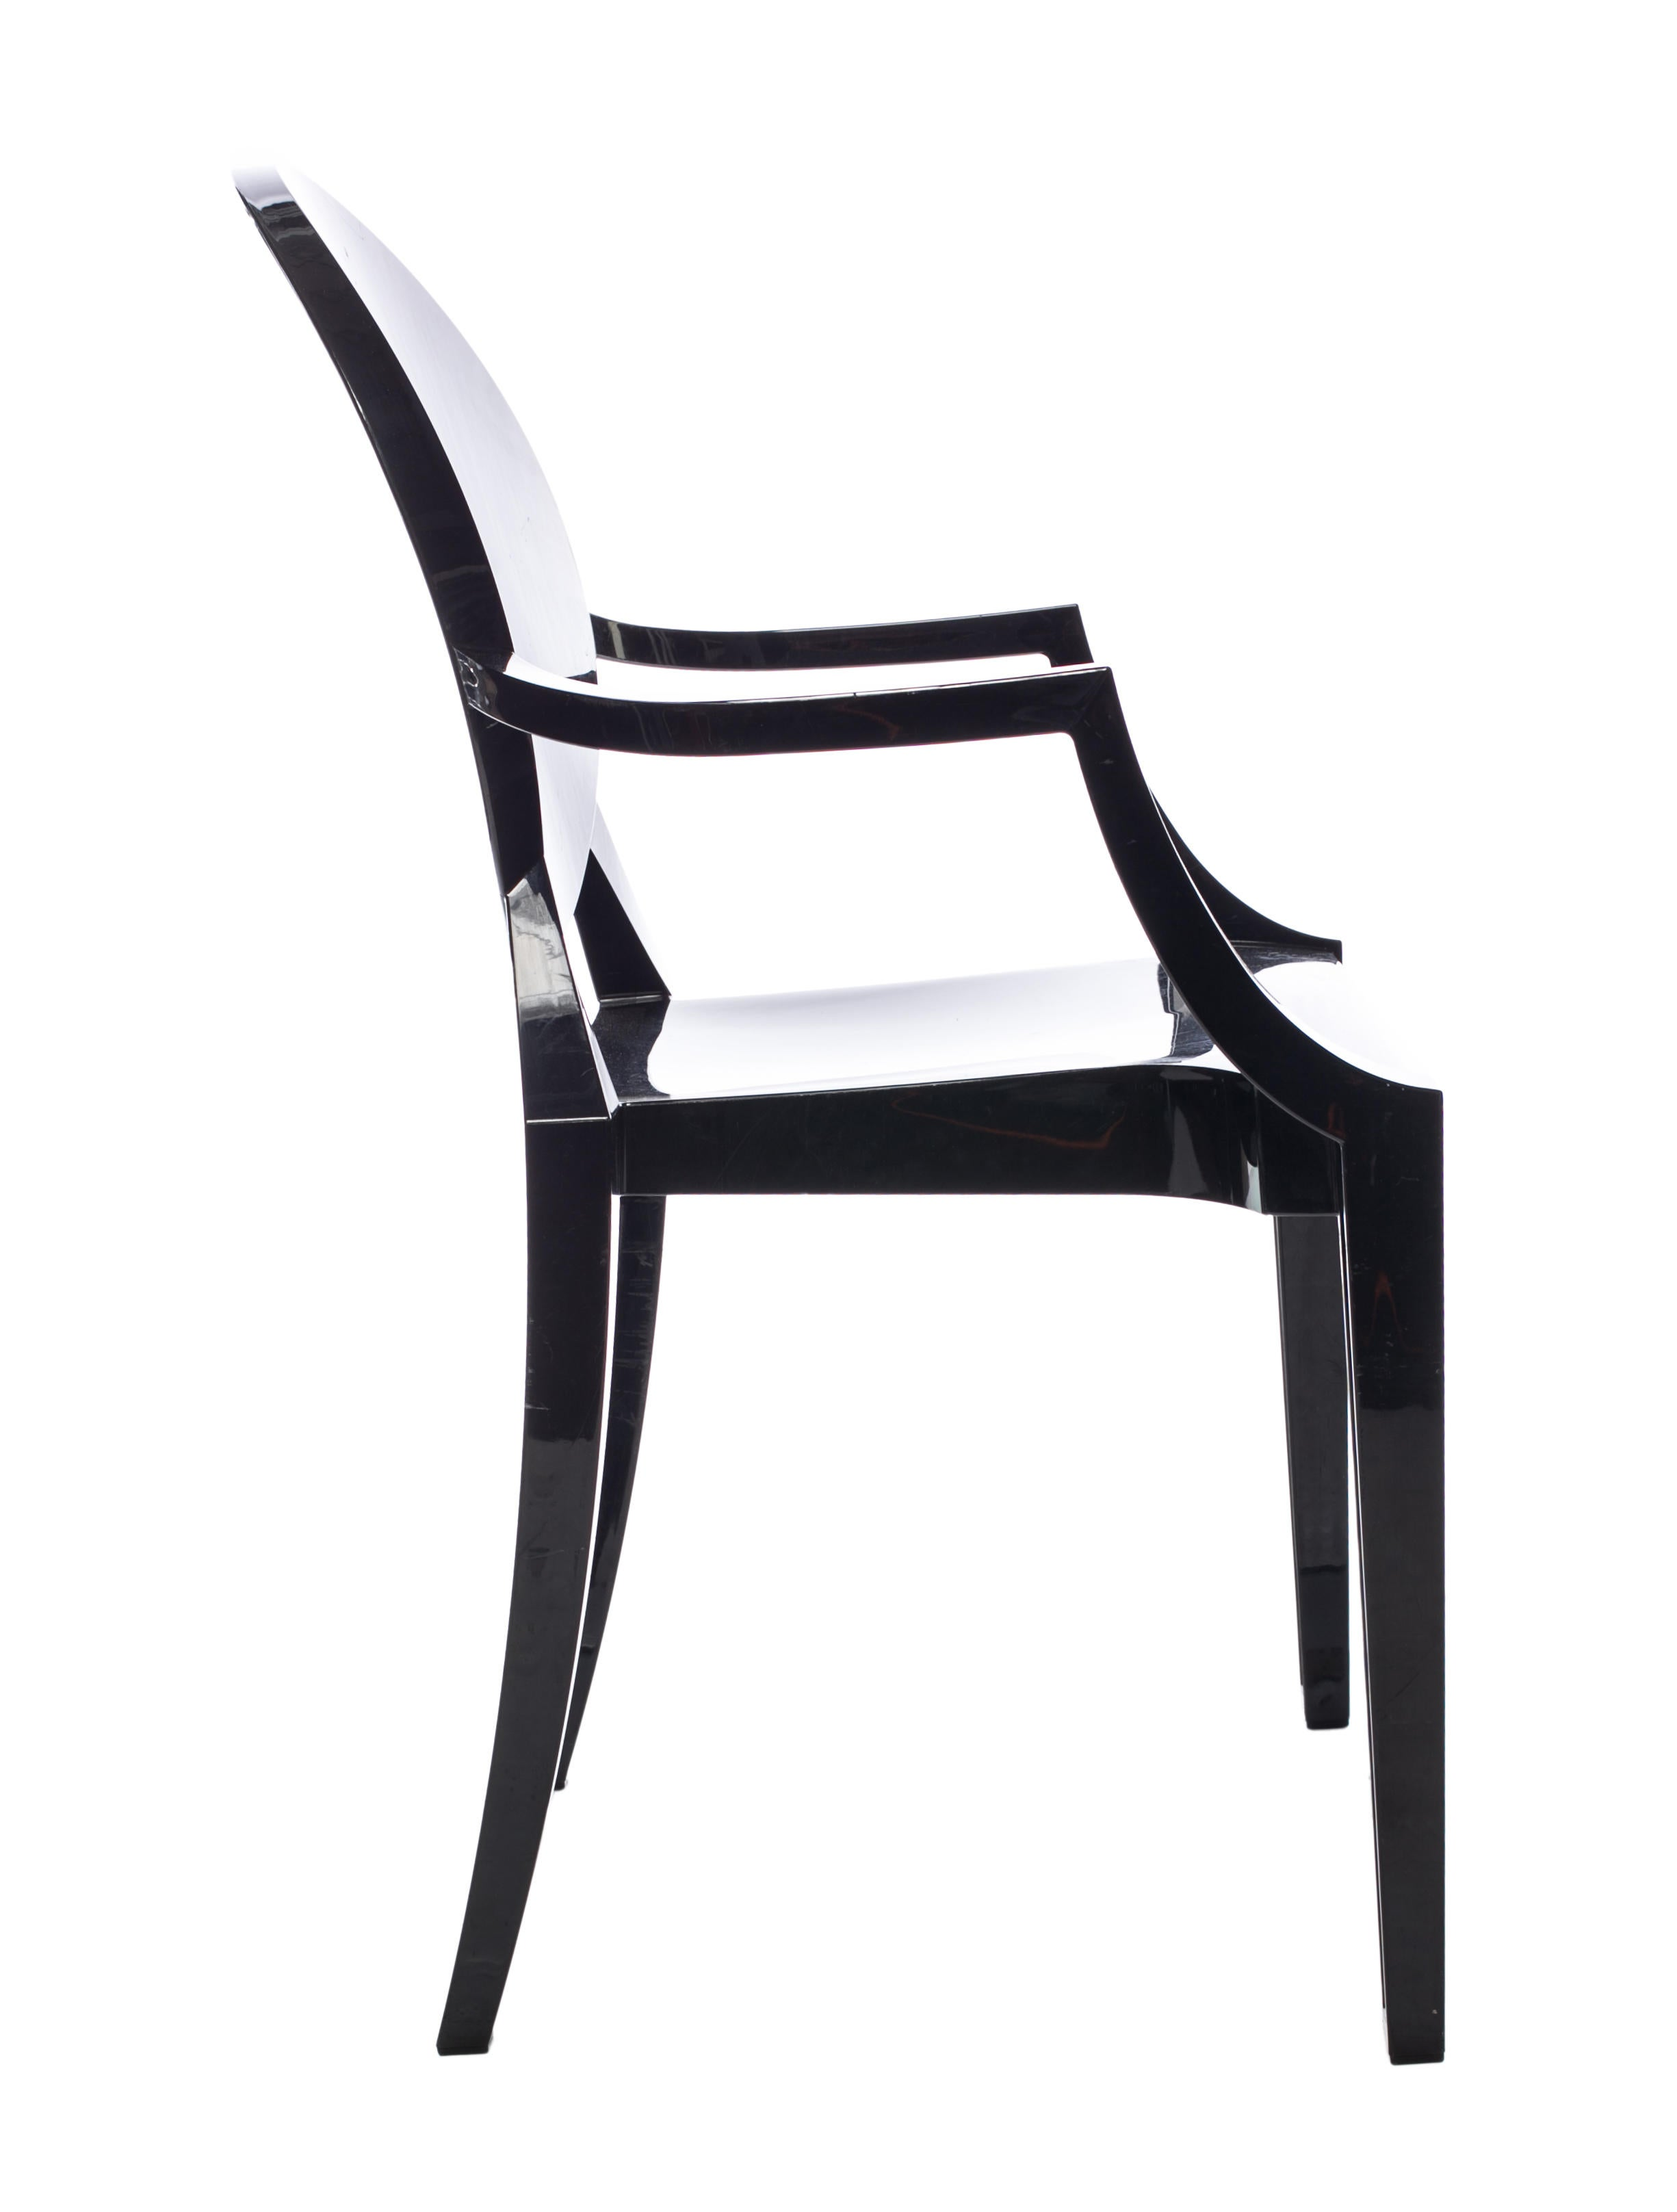 Philippe starck louis ghost chair set furniture ppe20024 the realreal for Philippe starck ghost chair